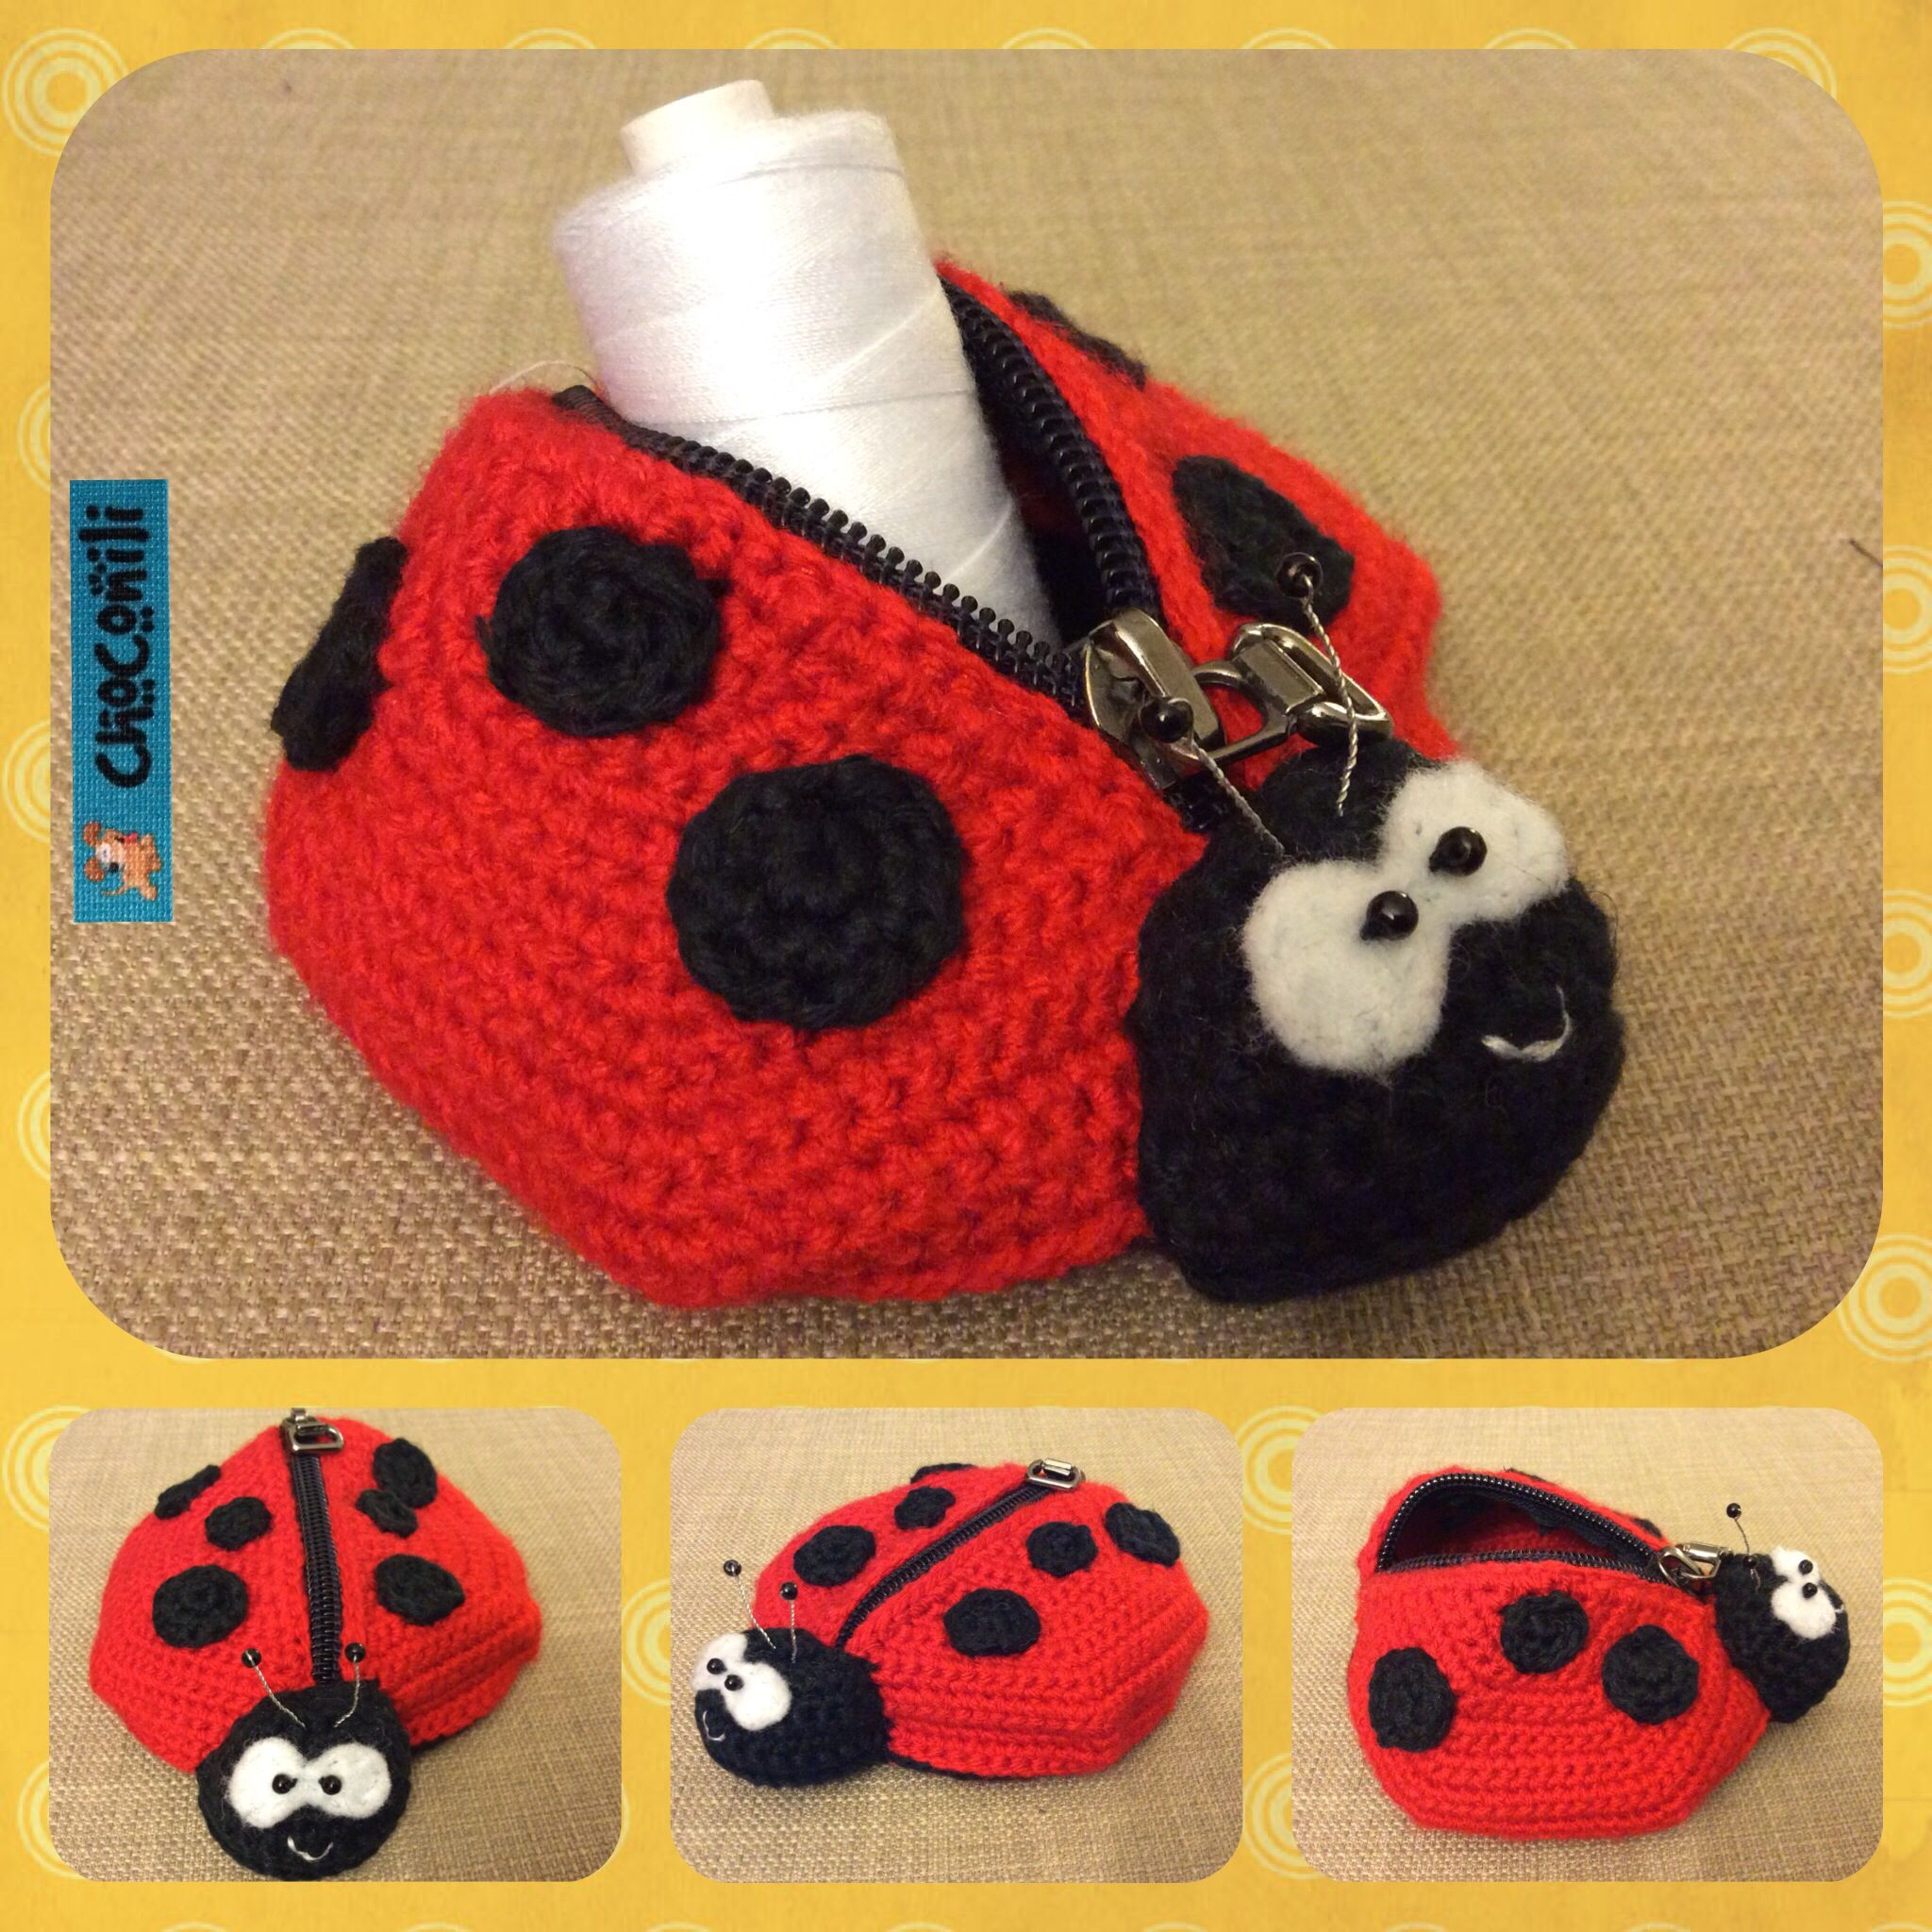 Free crochet pattern in German for ladybug coin purse | Buenas Ideas ...